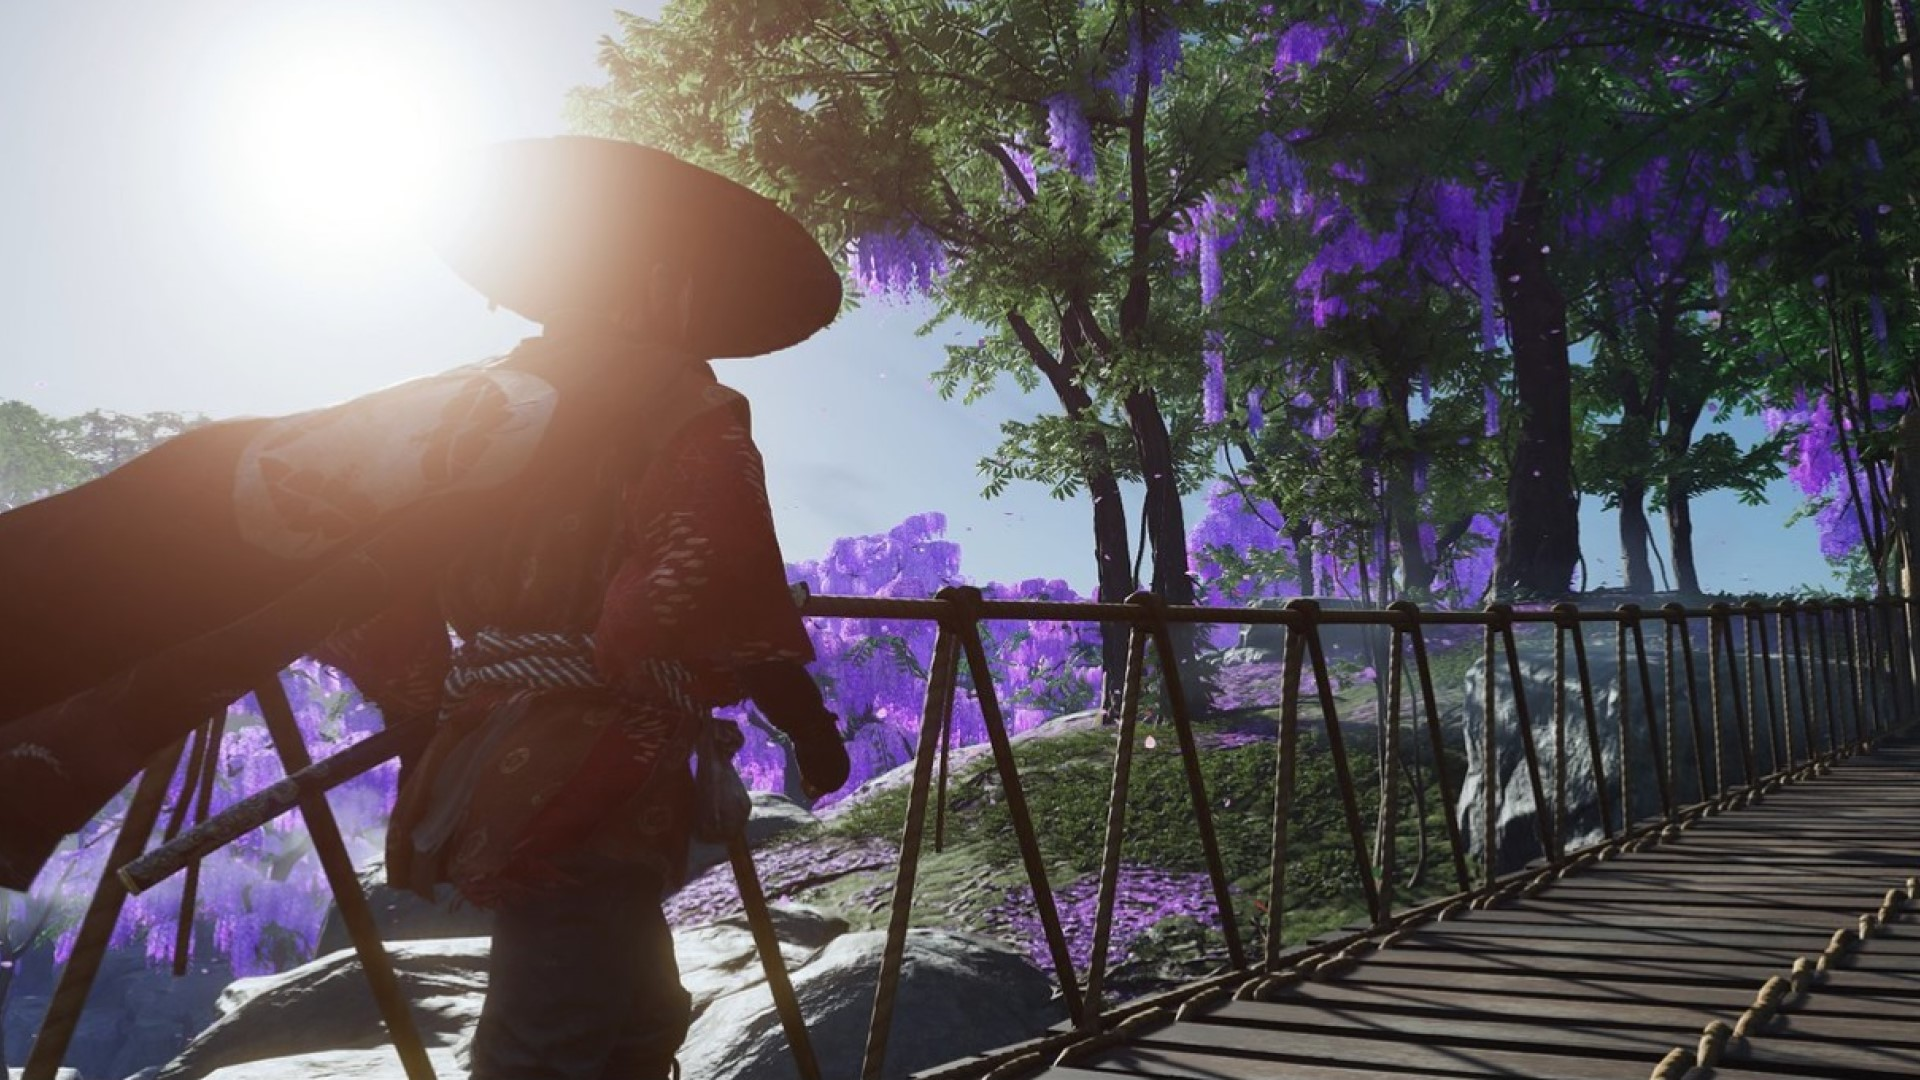 Ghost of Tsushima: Iki Island Expansion To Be Excited